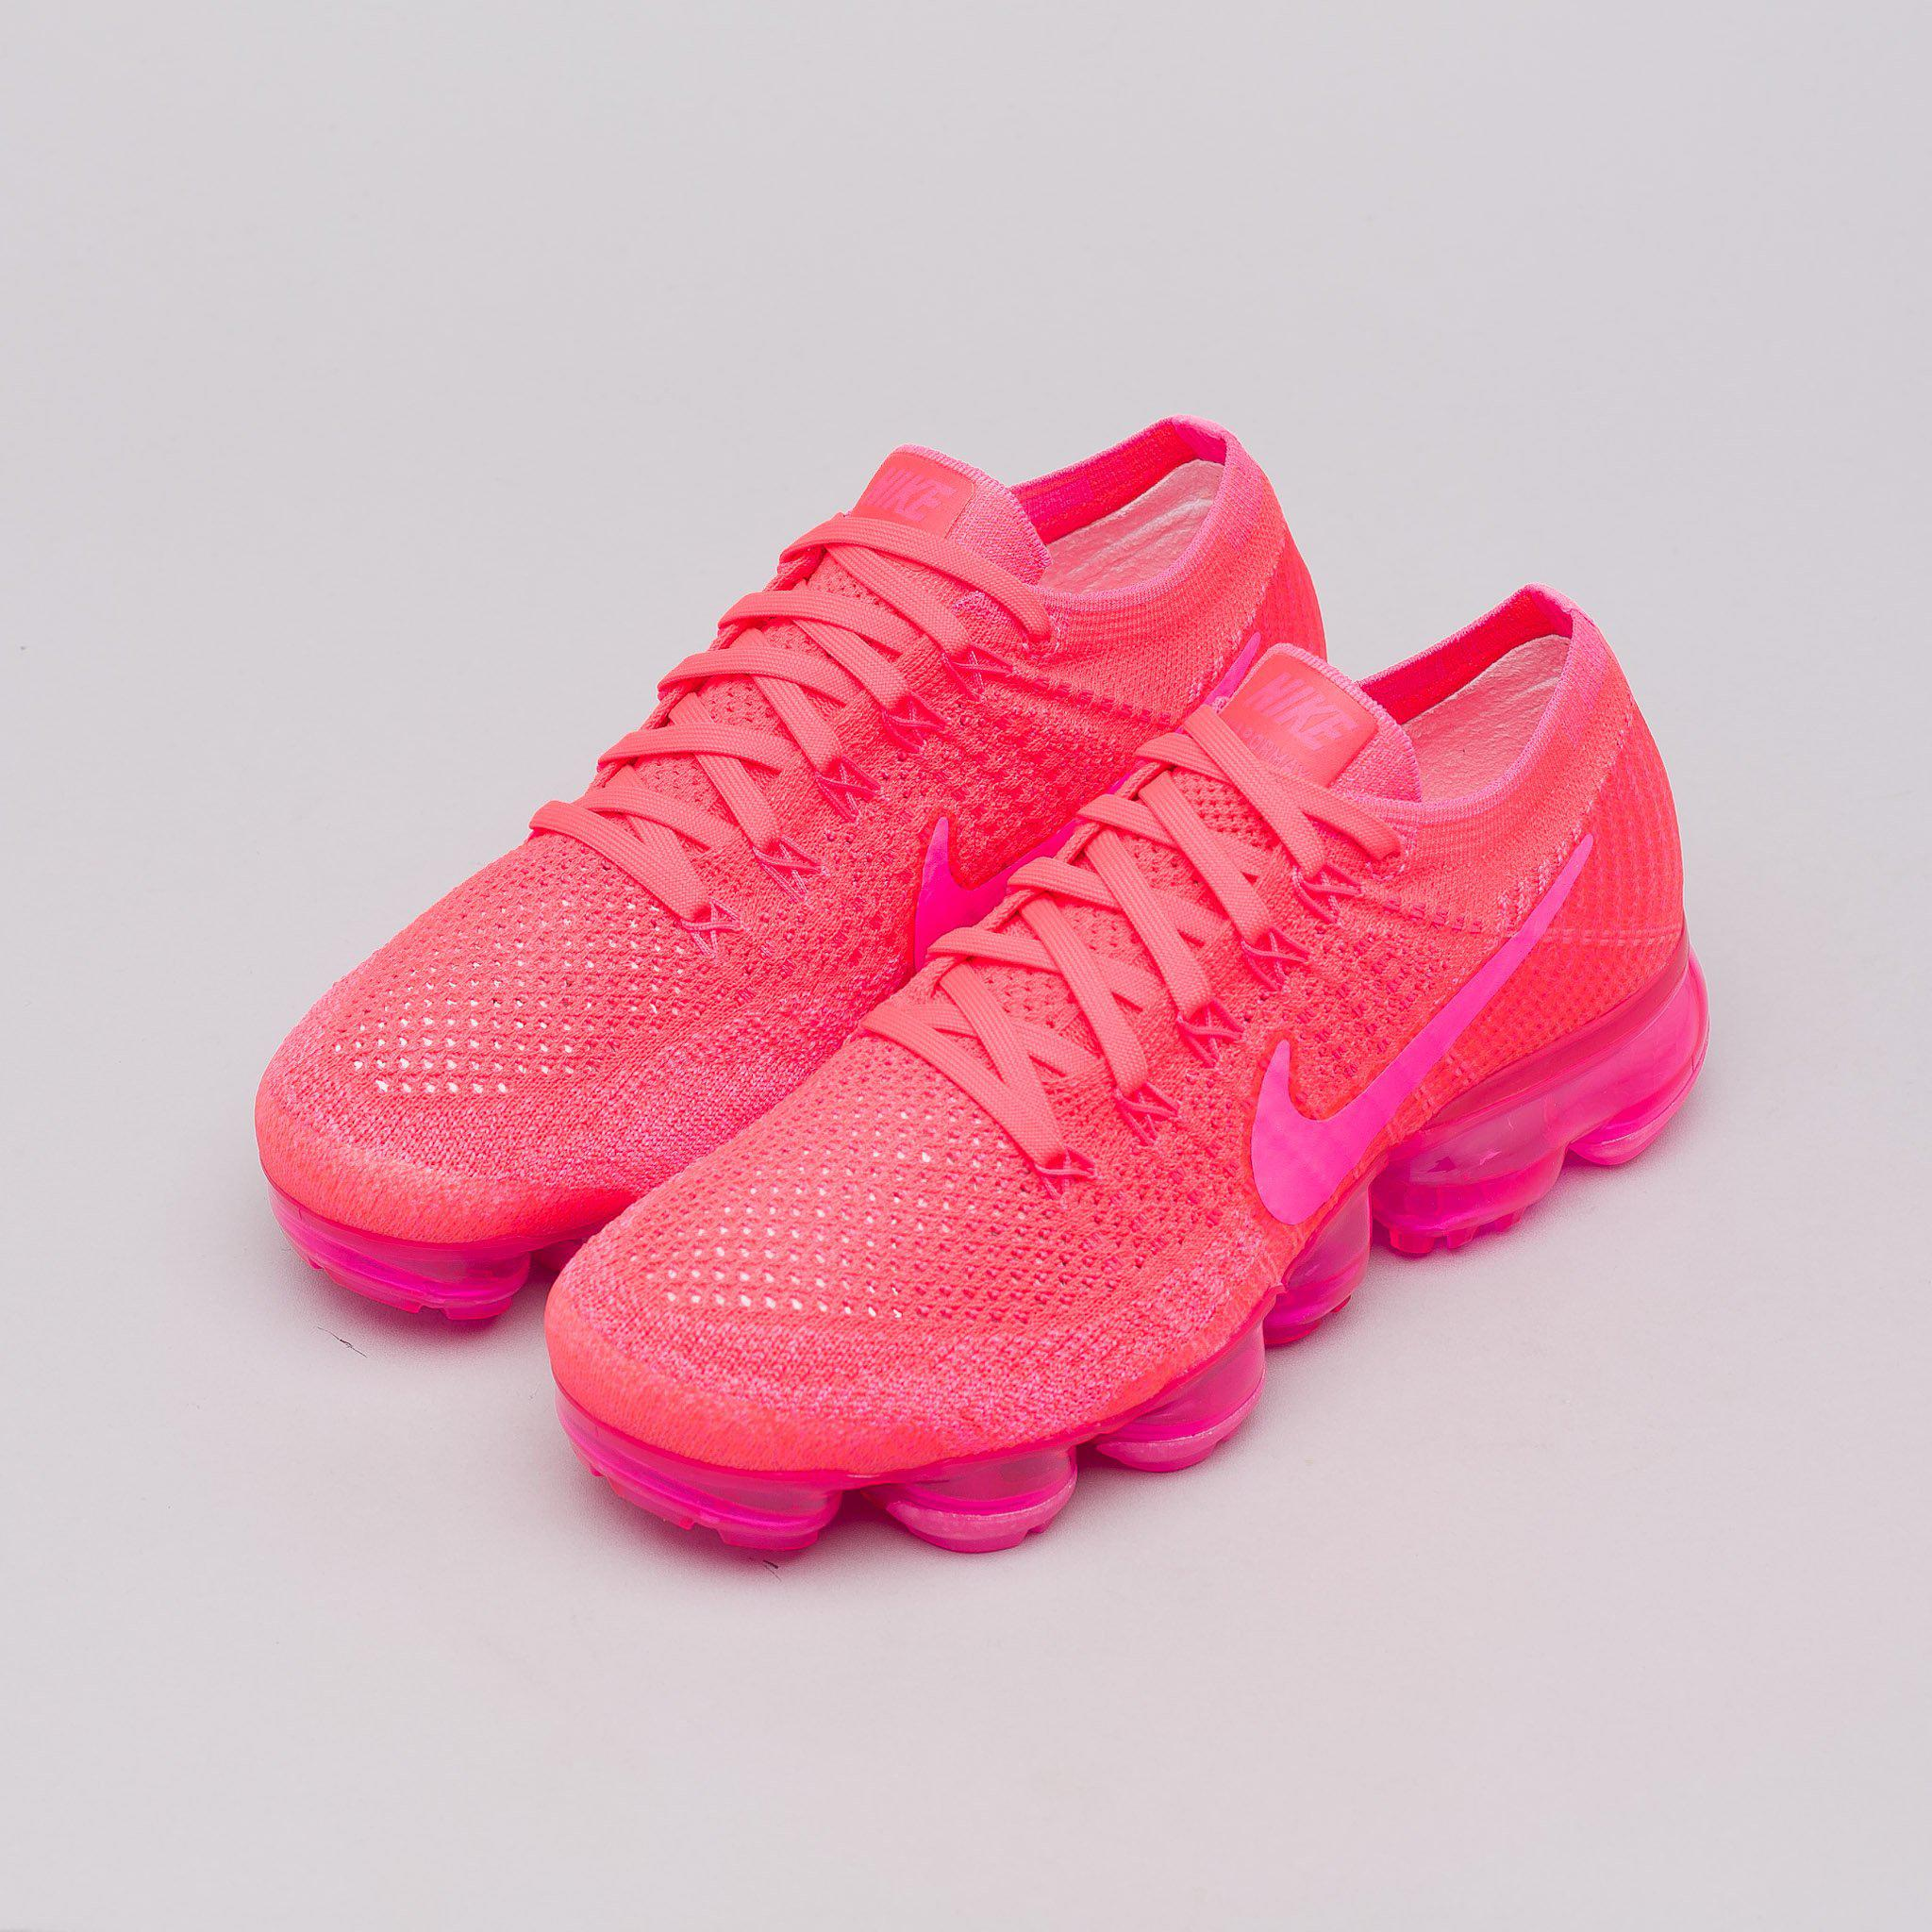 50% off flyknit air max hyper punch color 616ea 99a92